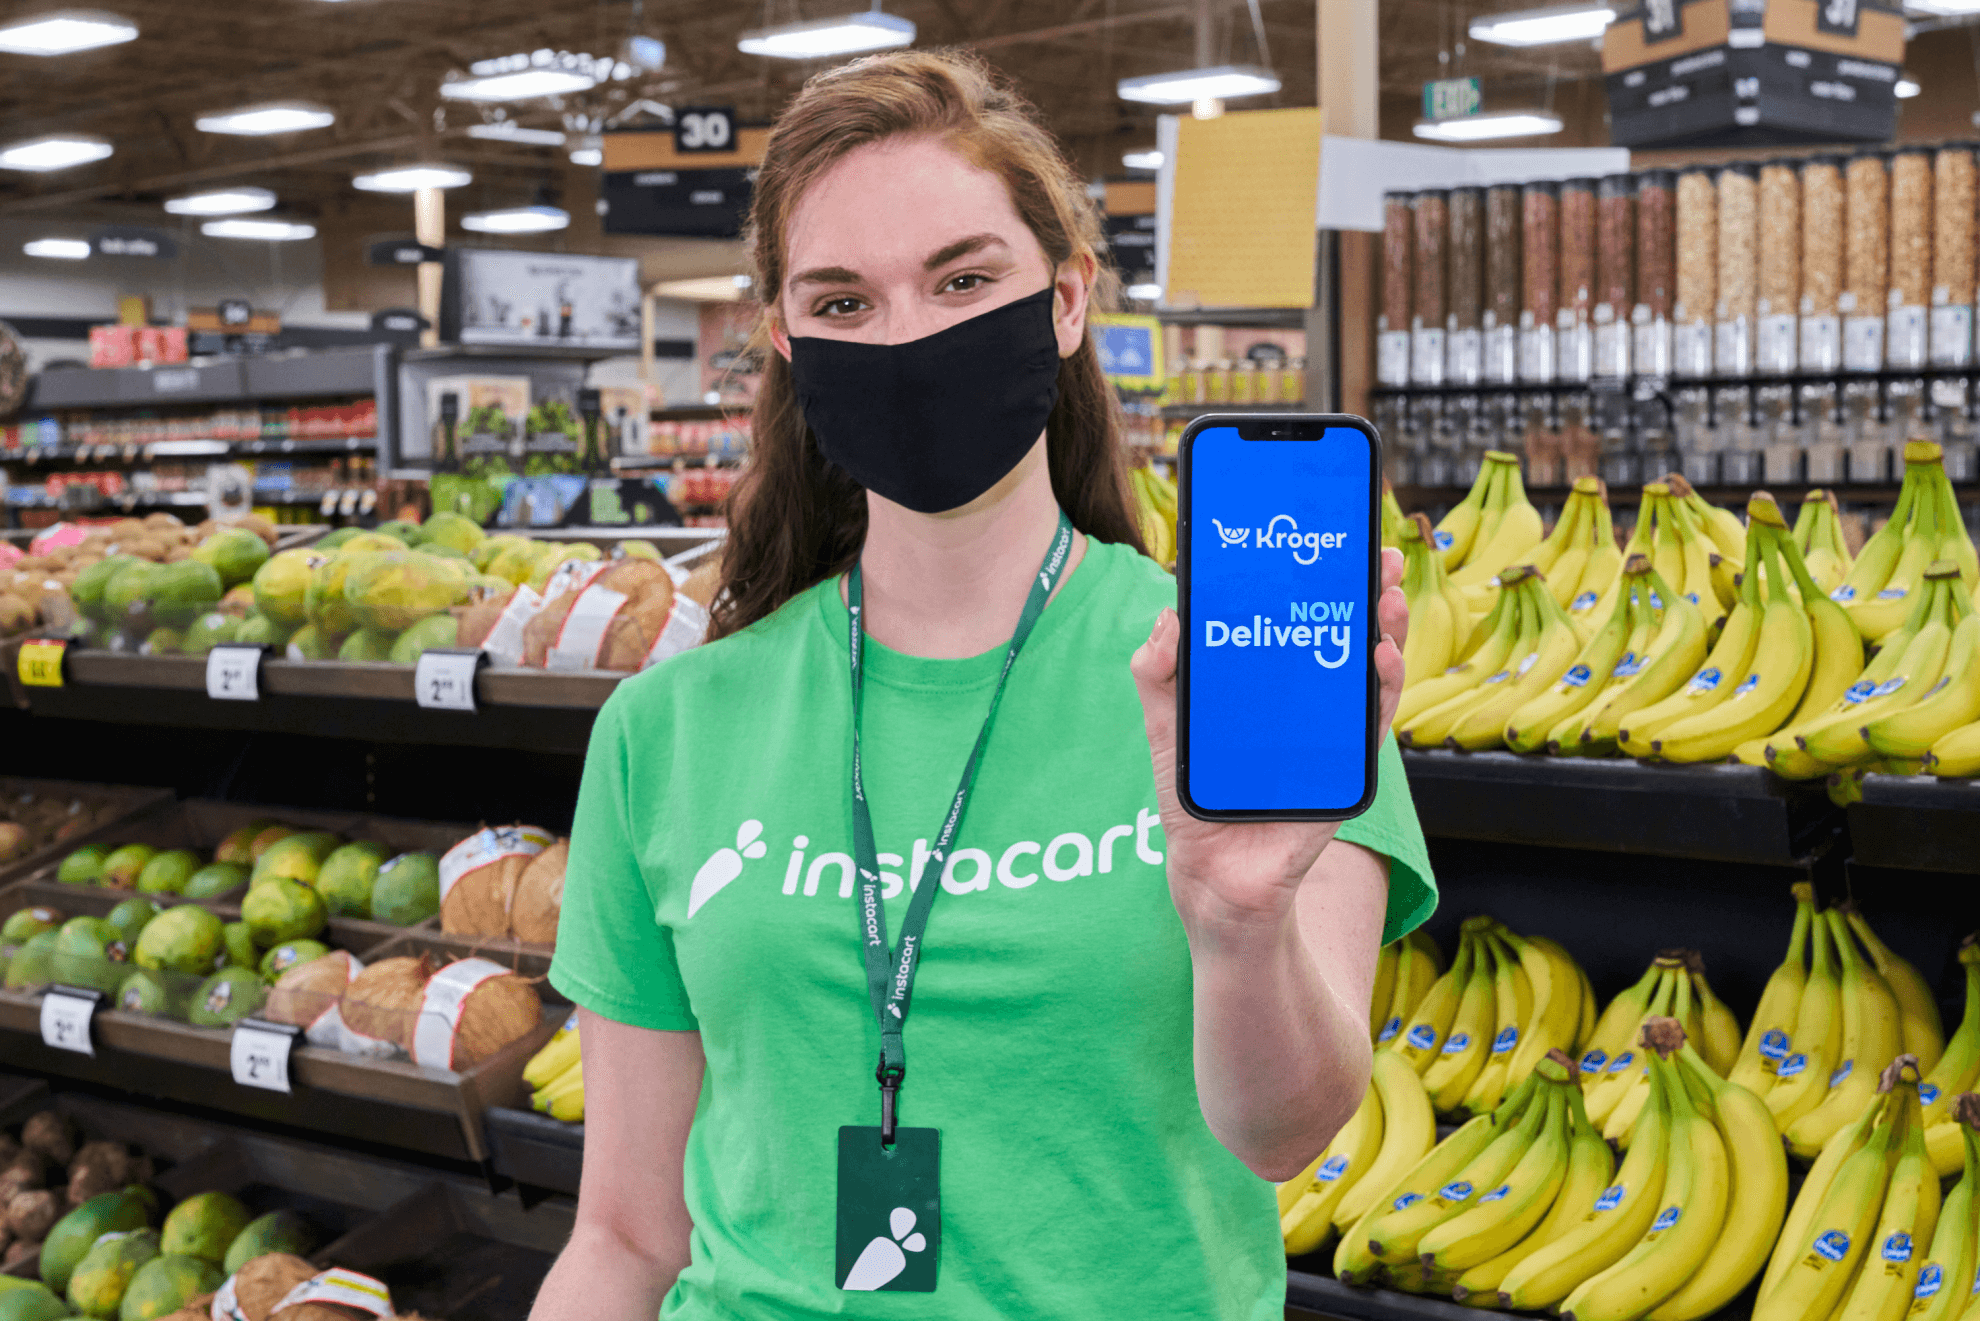 """Kroger and Instacart Launch """"Kroger Delivery Now"""" Nationwide to Provide 30-Minute Delivery Enabled by First-of-its-kind Virtual Convenience Store"""